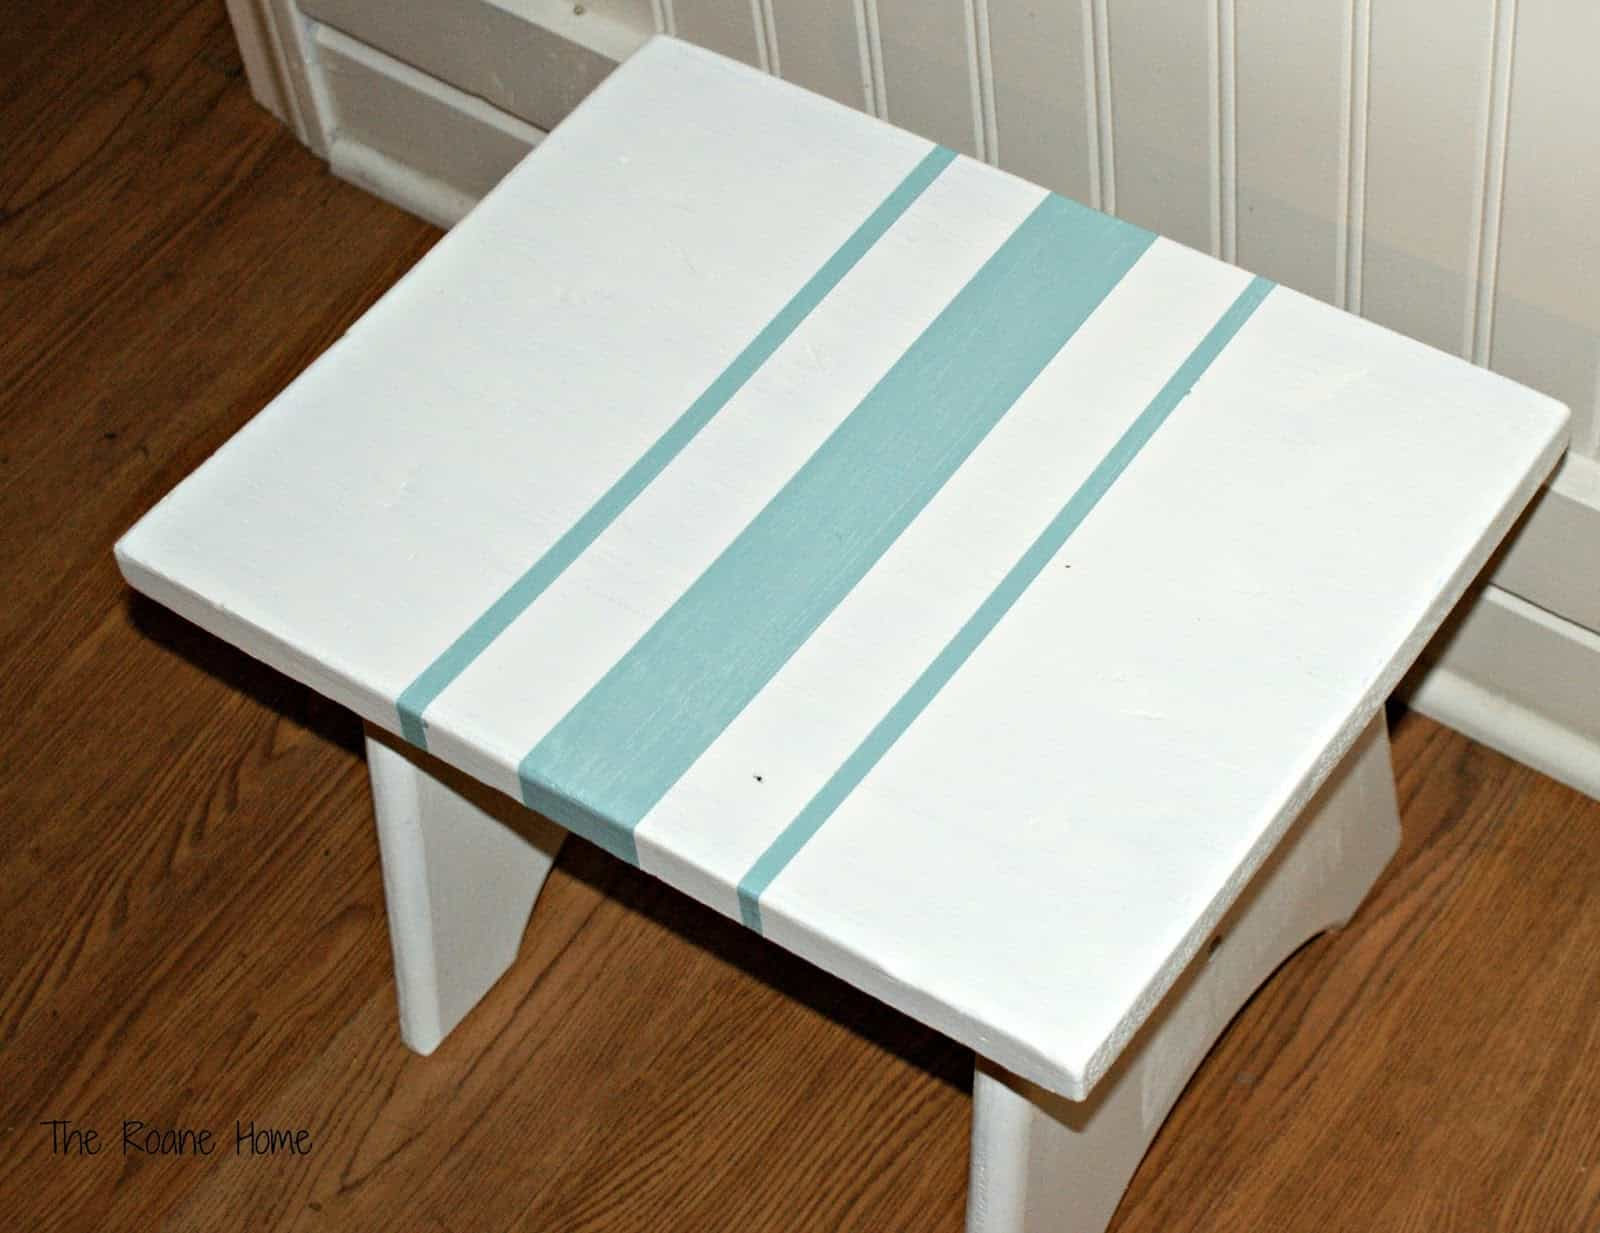 Painted Farmhouse Stool from The Roane Home